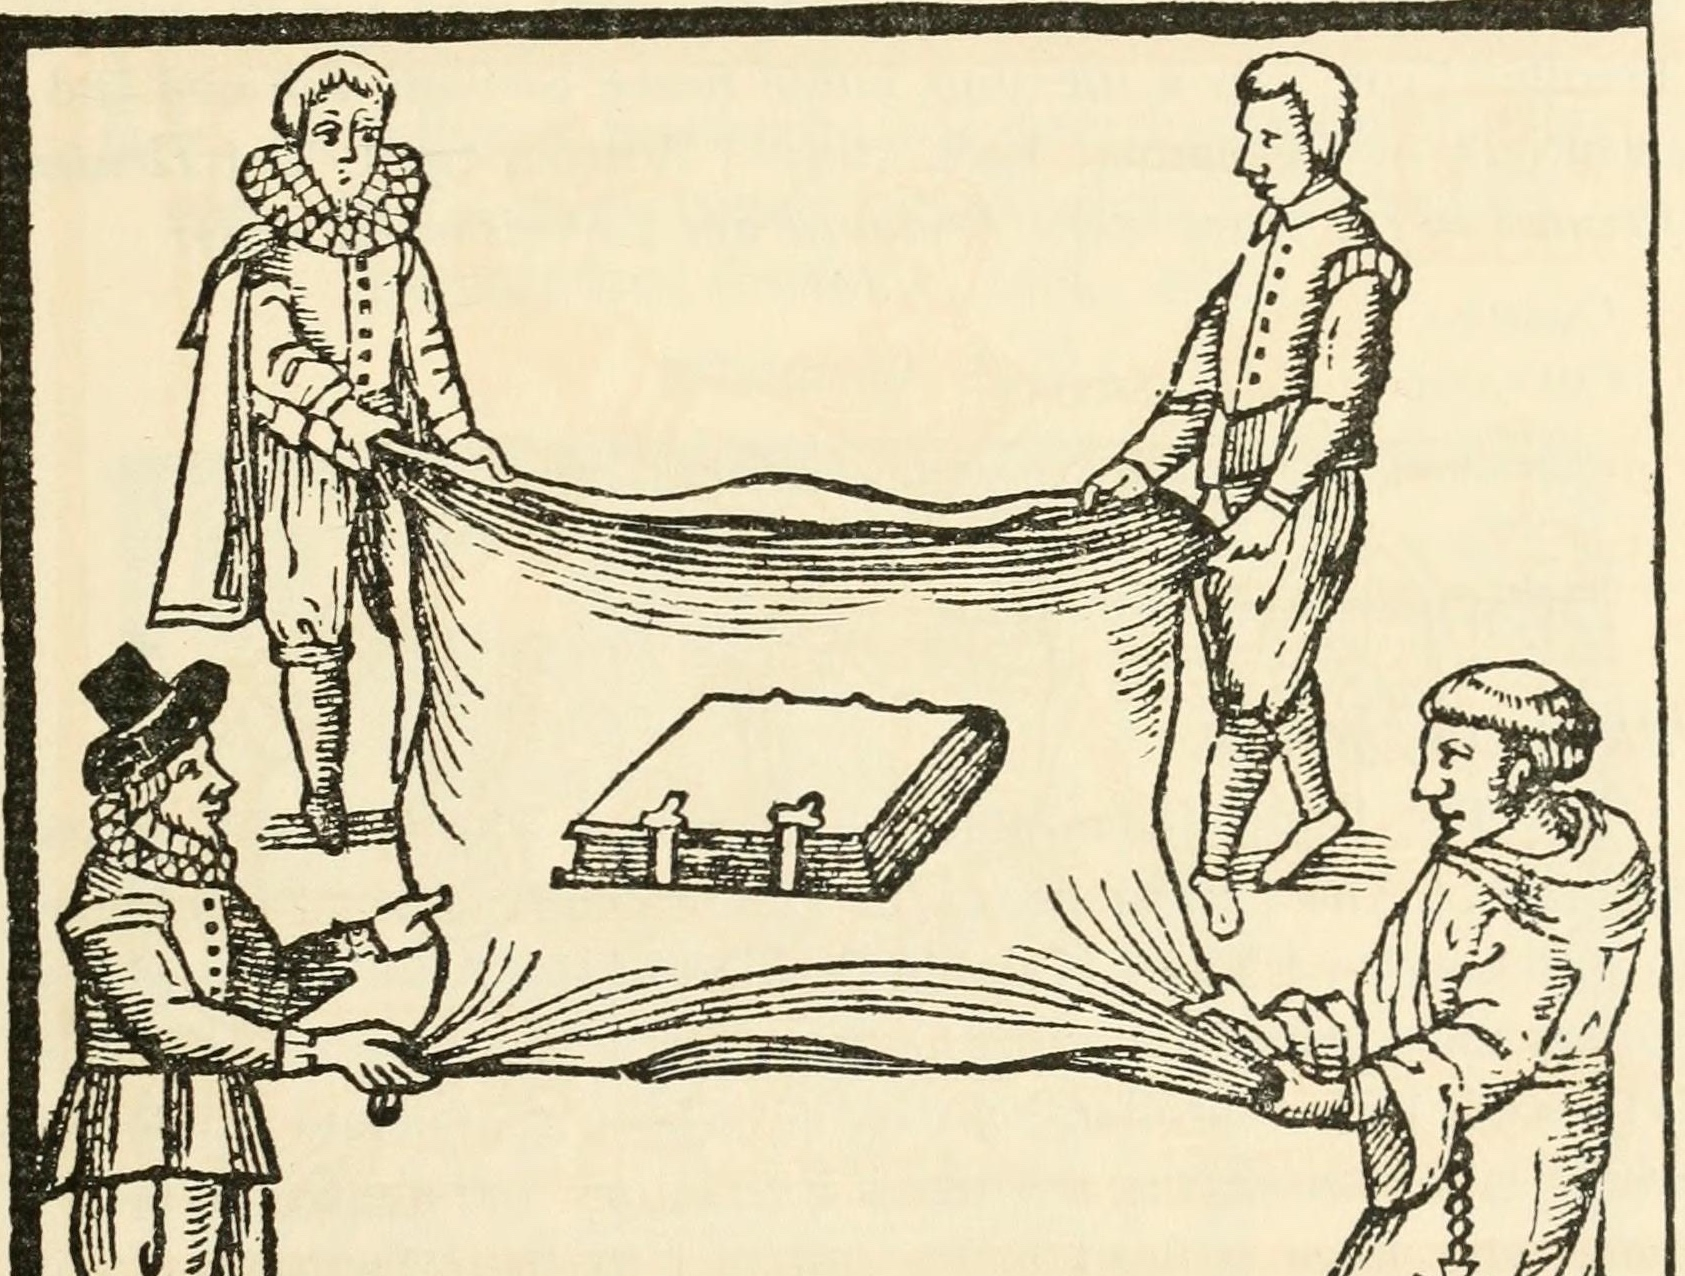 A woodcut showing a book held on a sheet